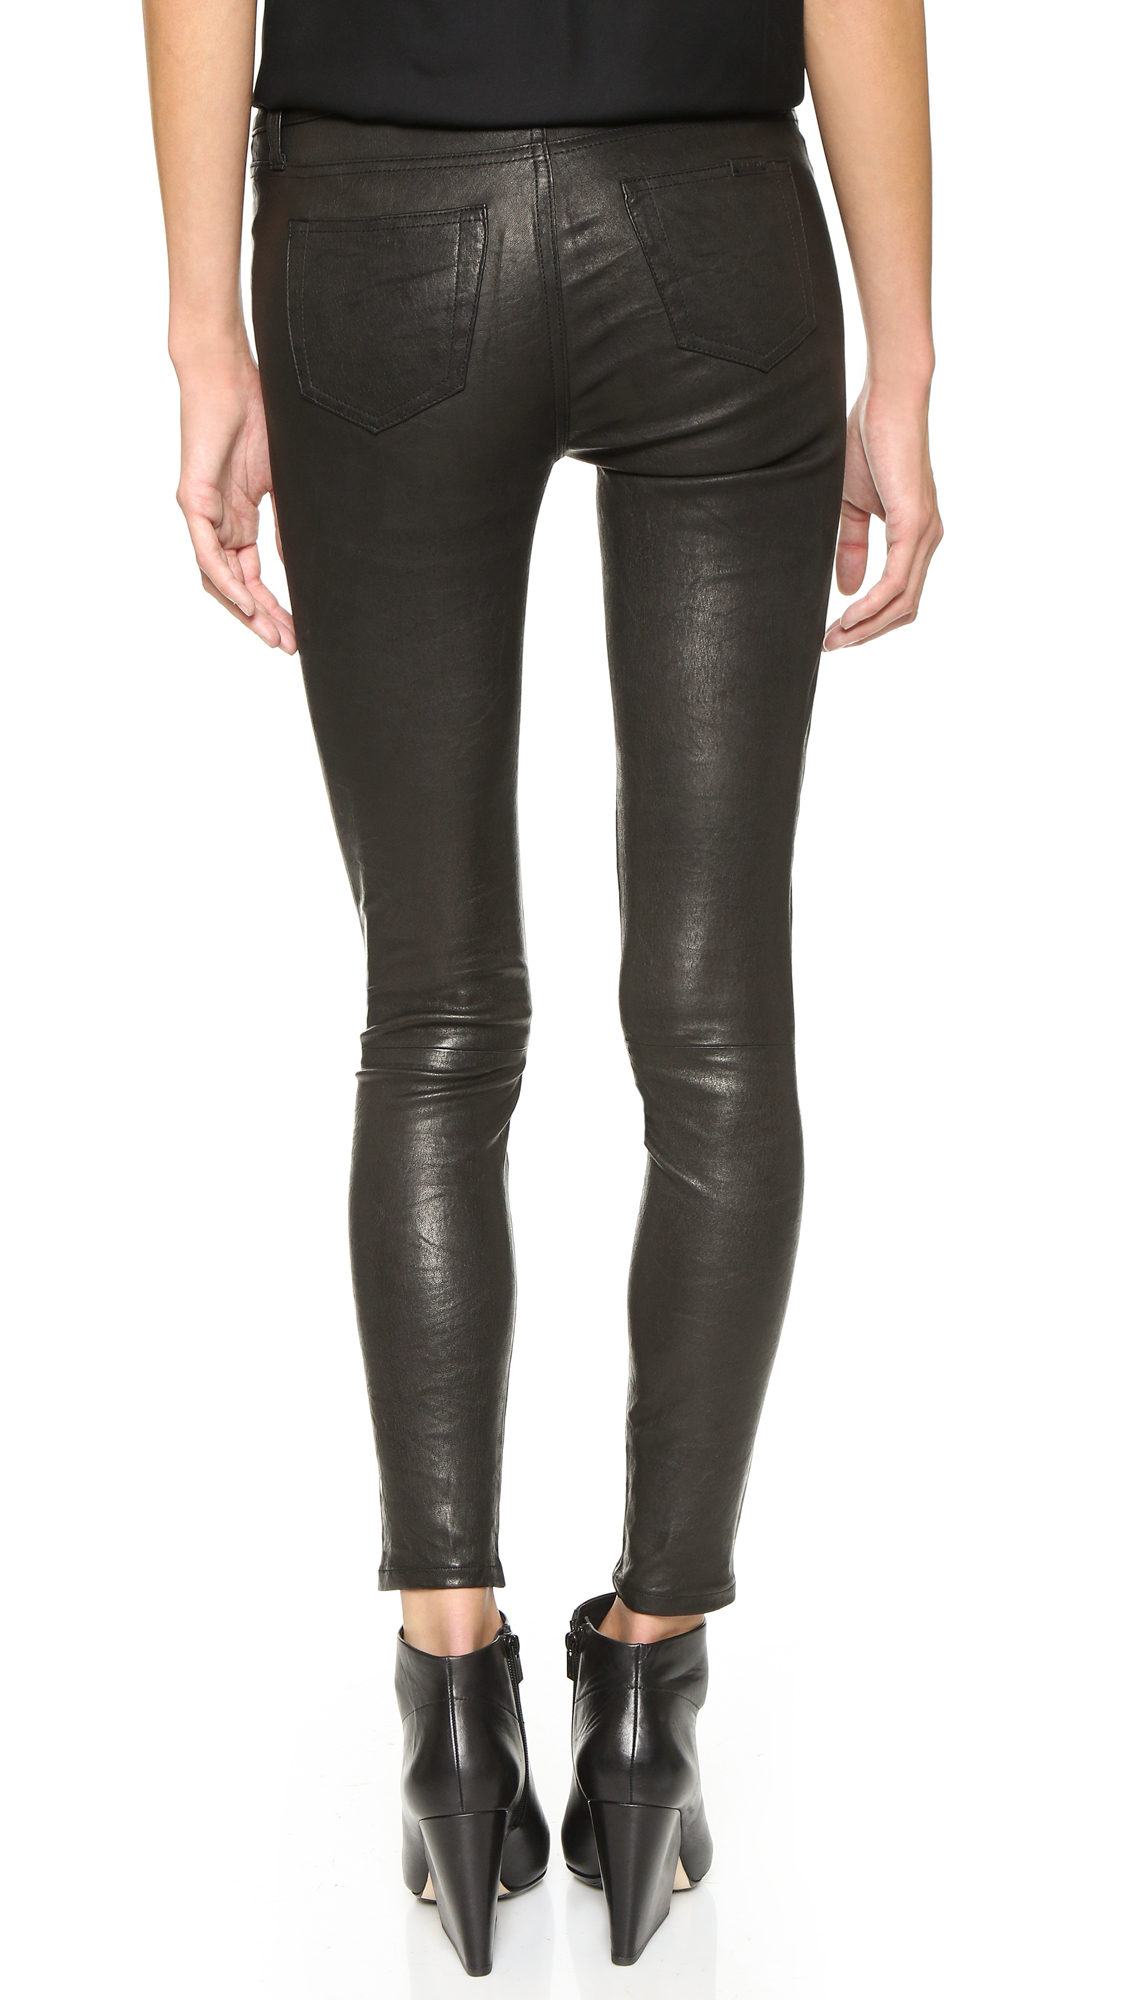 Lyst - Givenchy Leather Panel Denim Jeans in Blue